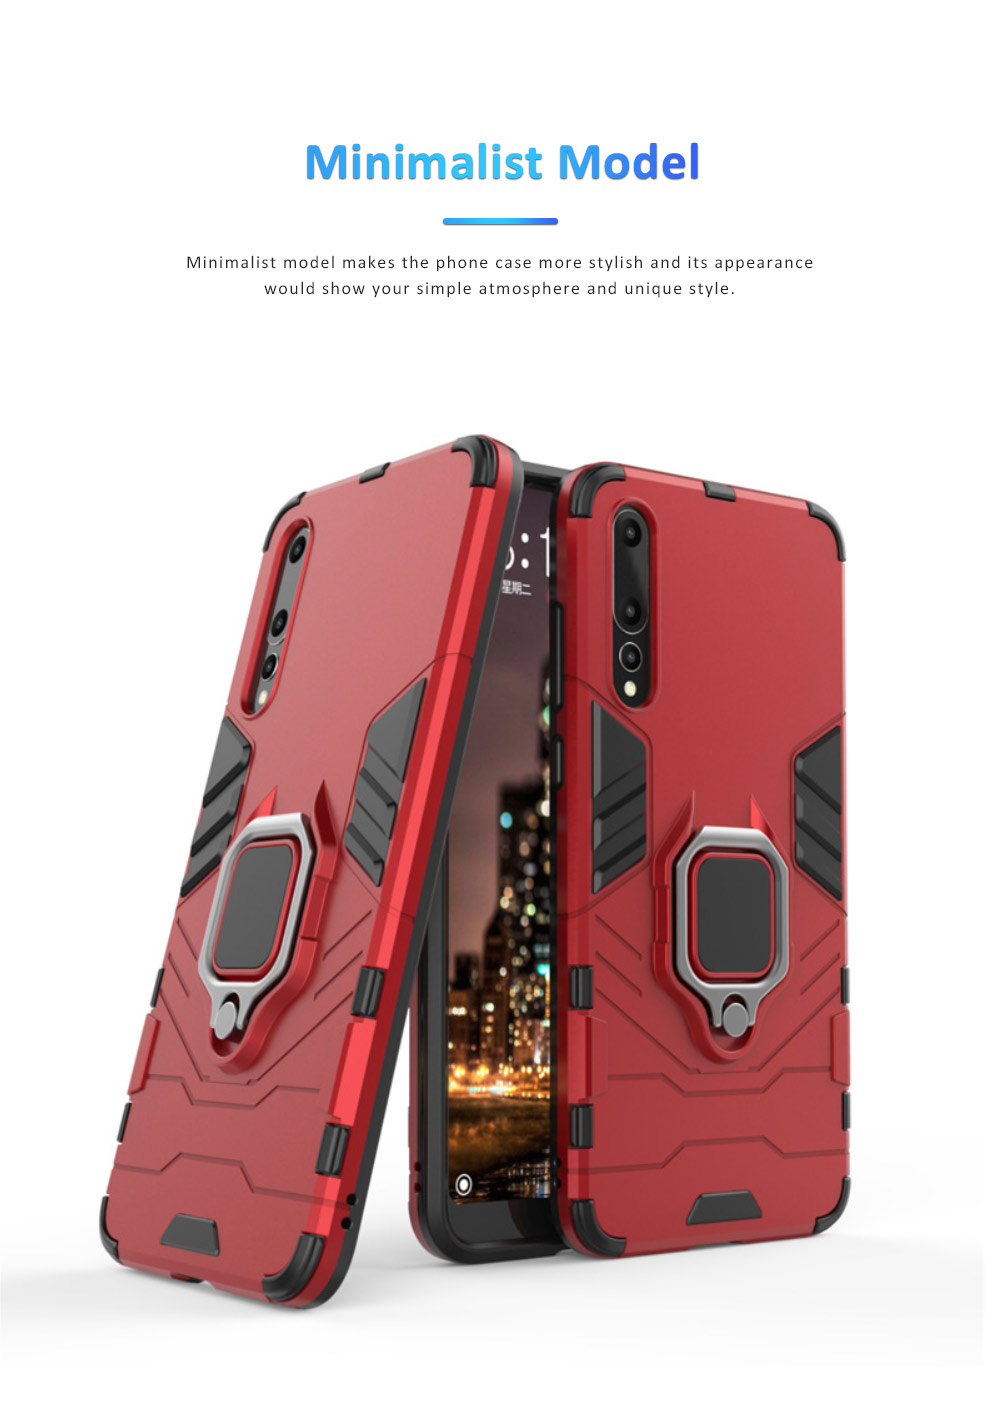 Soft PC TPU Huawei Phone Case with Vehicle Magnetic Attraction, Minimalist Luxury Breaking-proof Phone Cover with Ring Holder 5